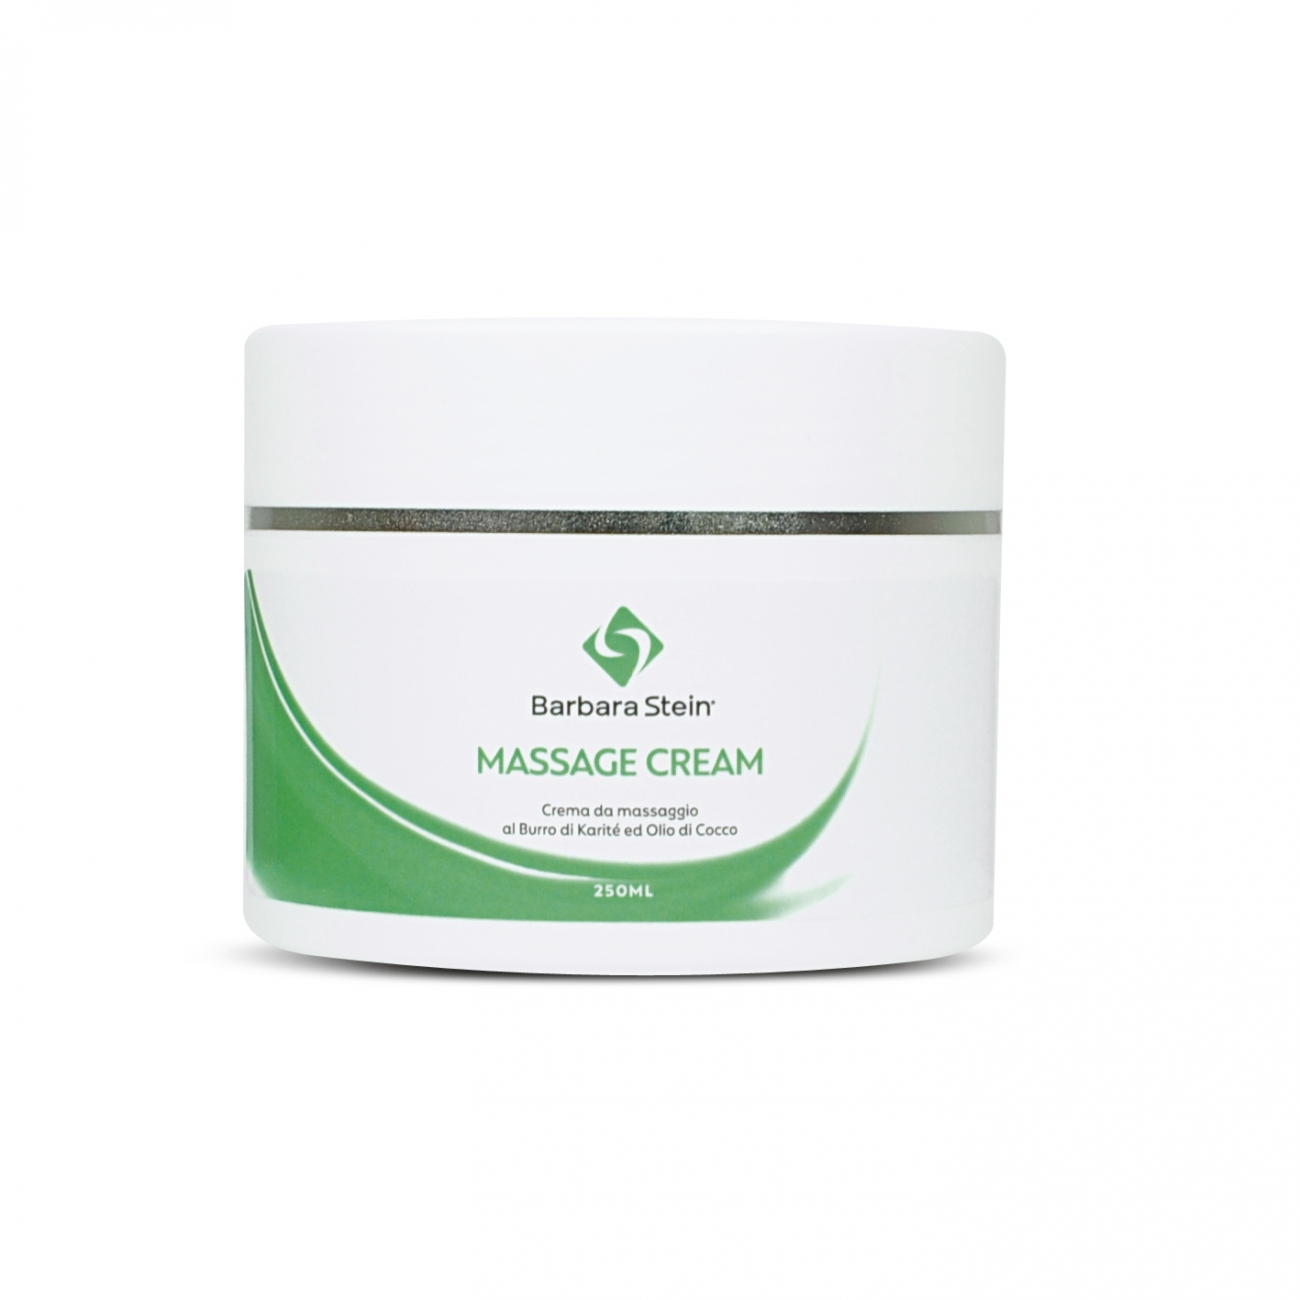 MASSAGE CREAM (250 ml)